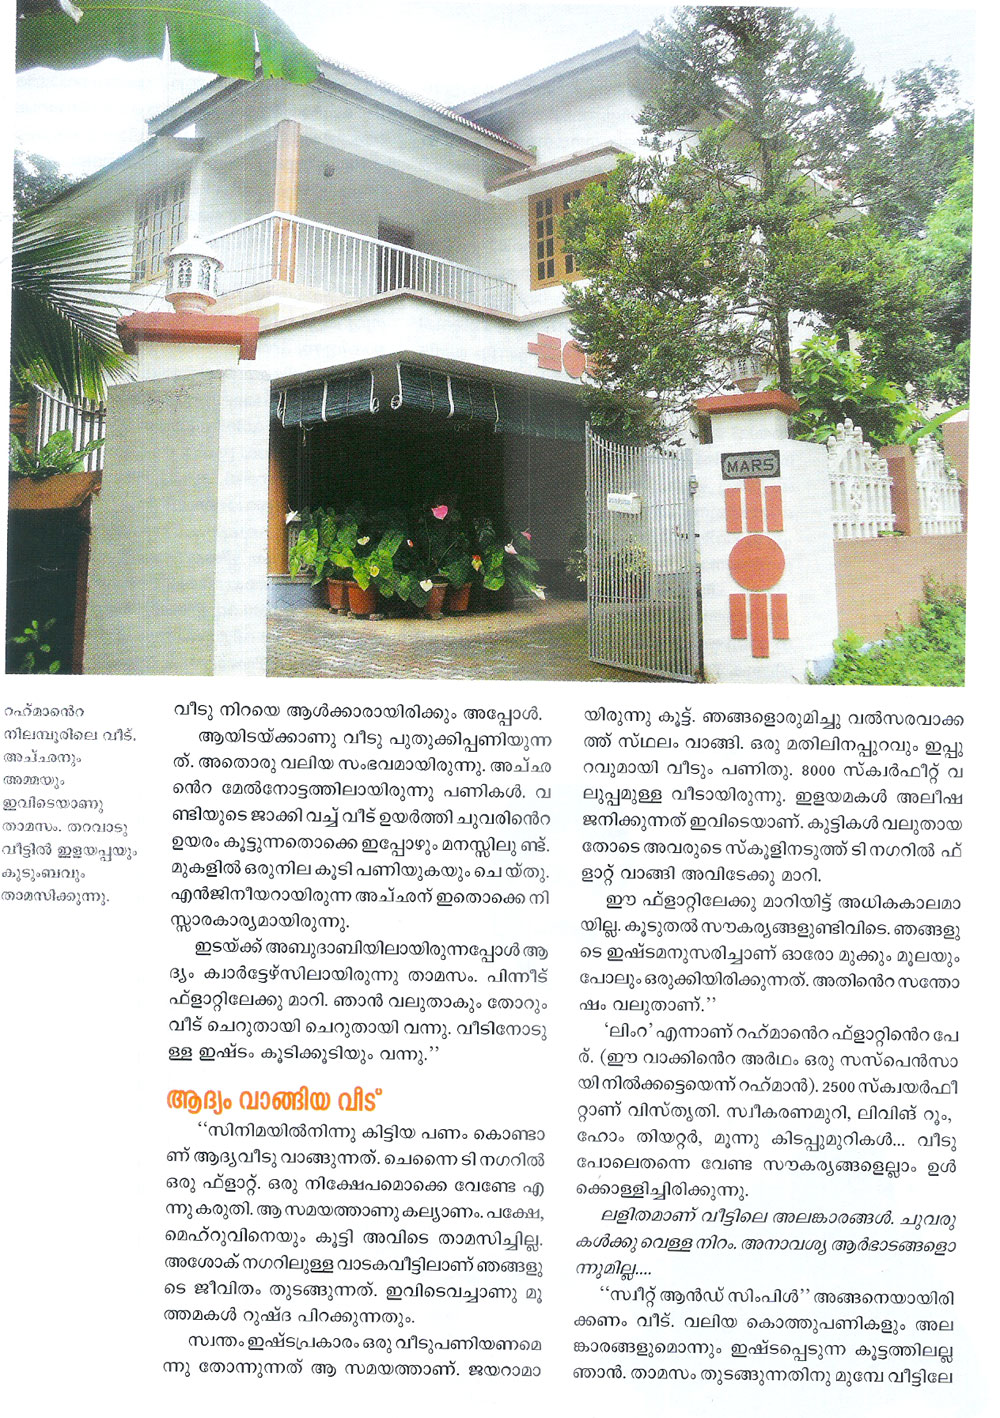 Vanitha veedu plans contemporary house joy studio design for Veedu plans kerala